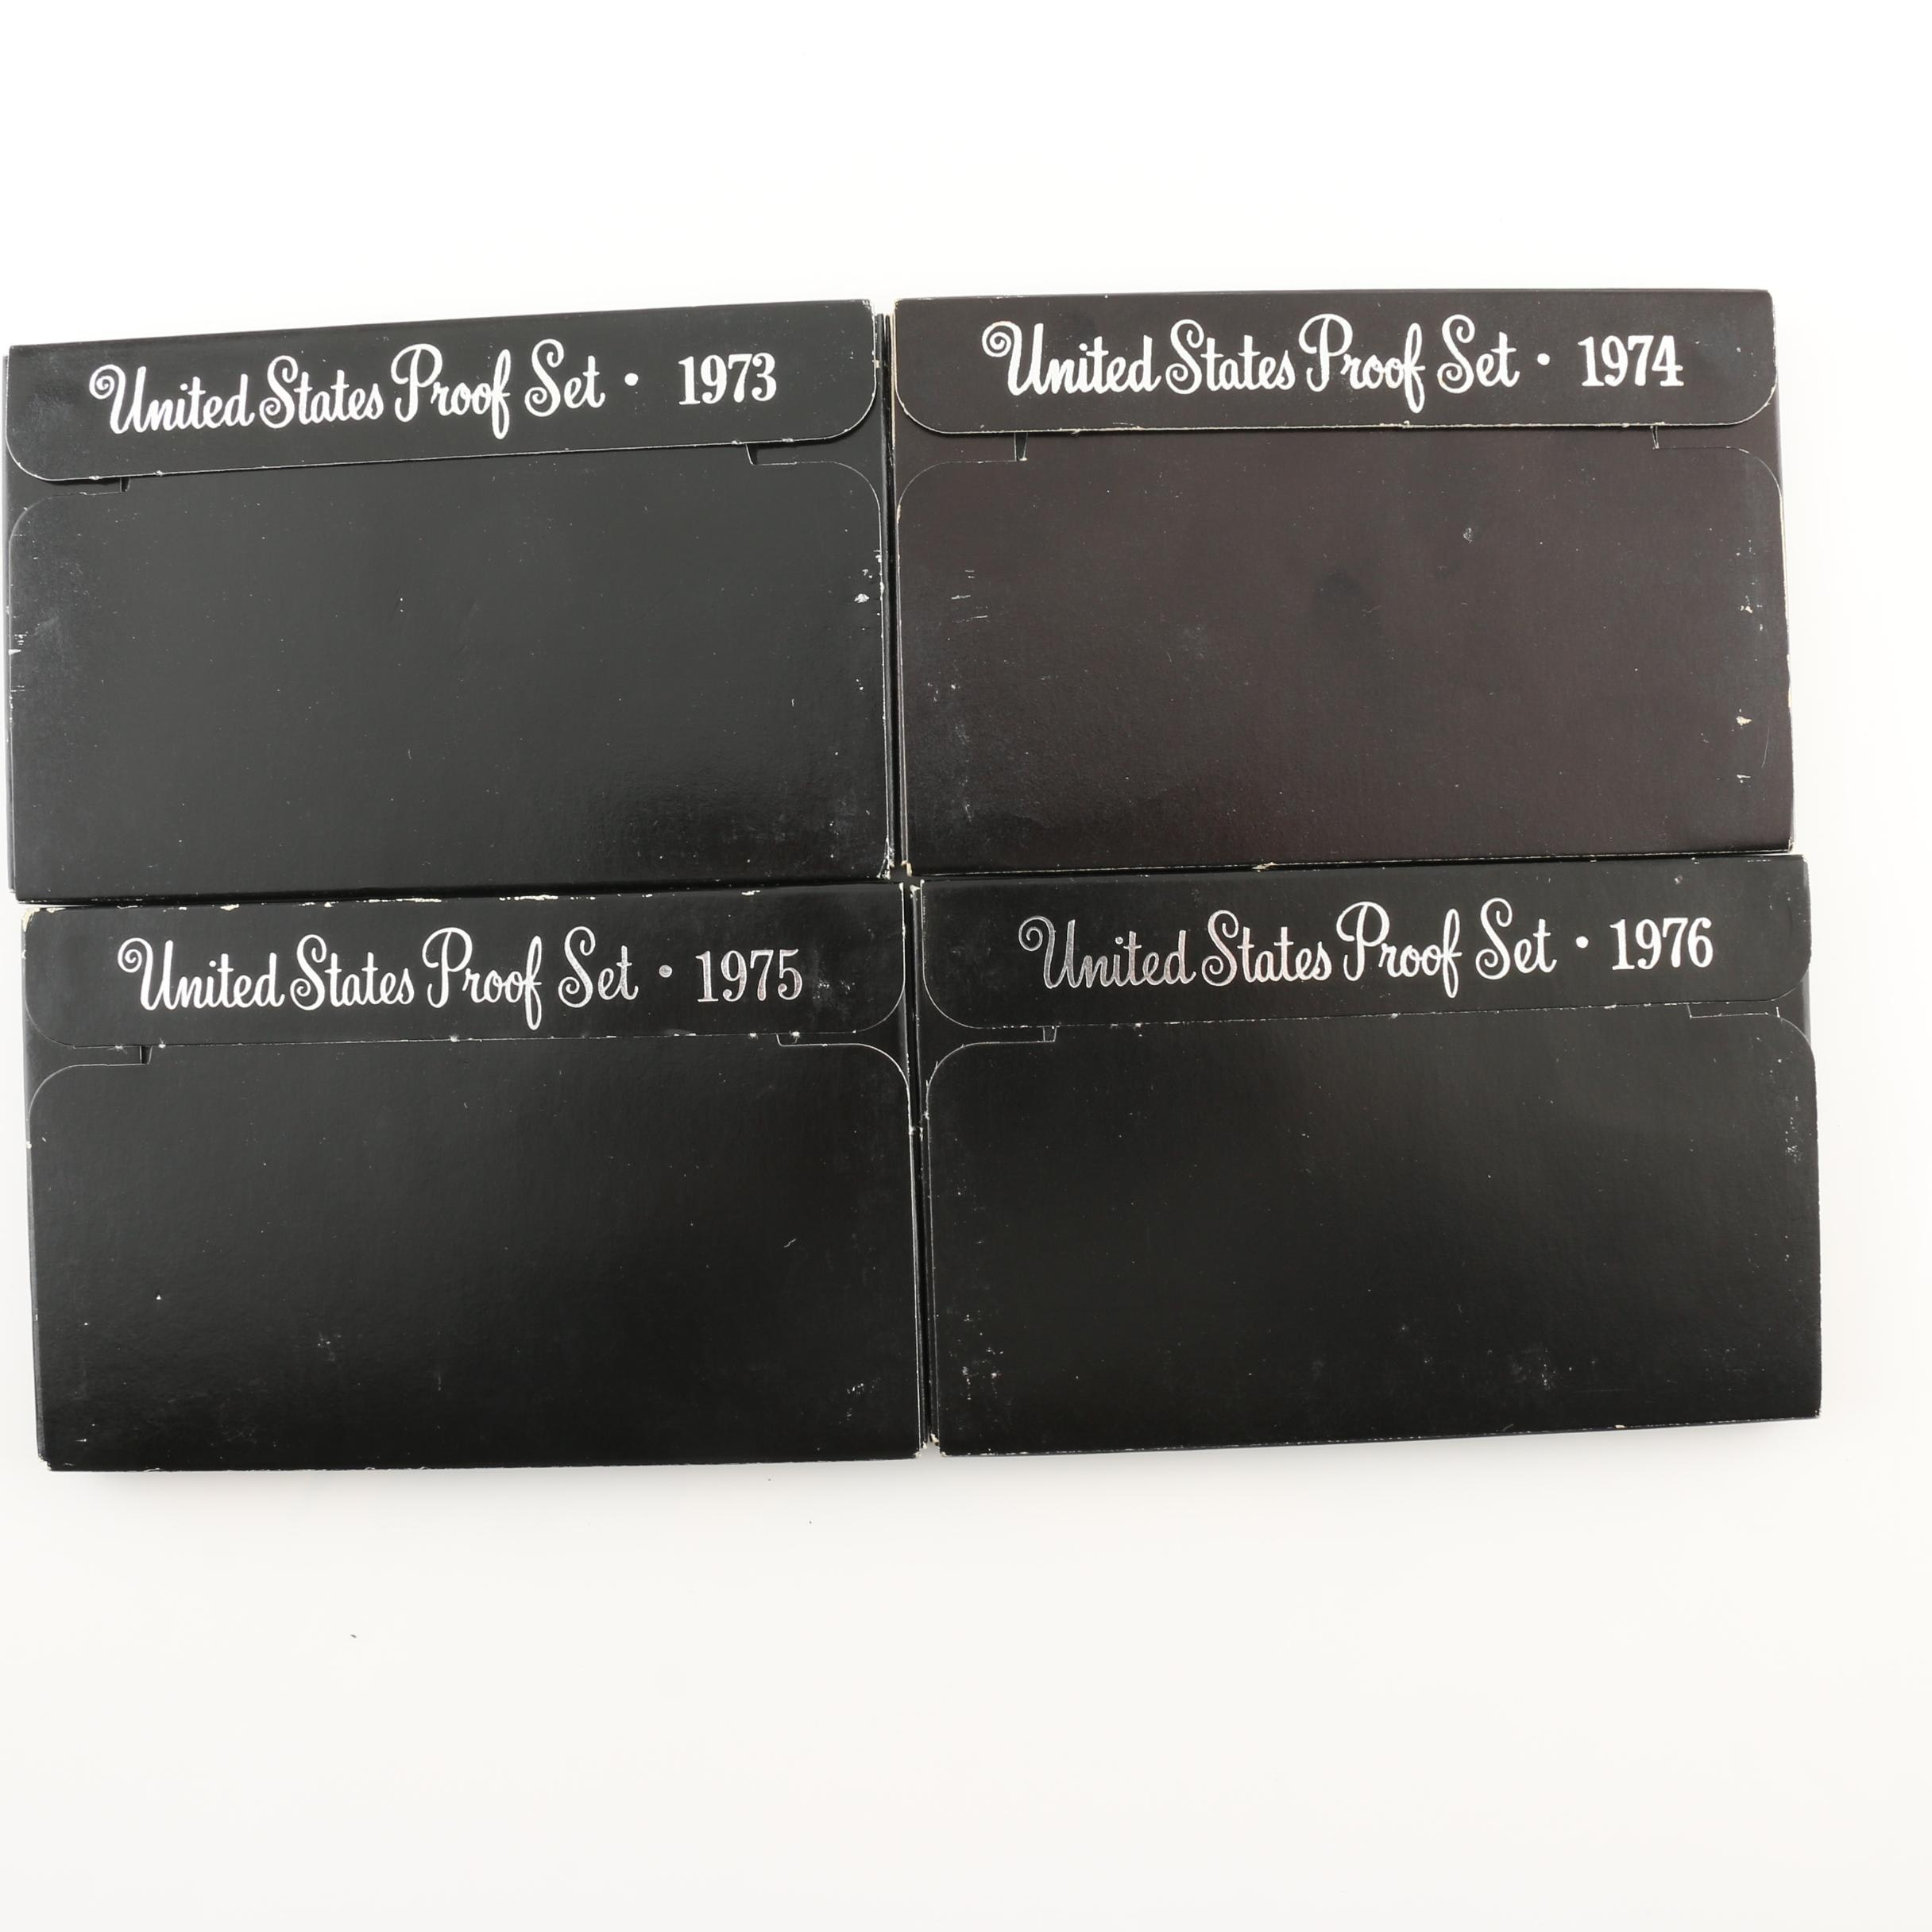 Group of Four U.S. Mint Proof Sets Including 1973, 1974, 1975, 1976